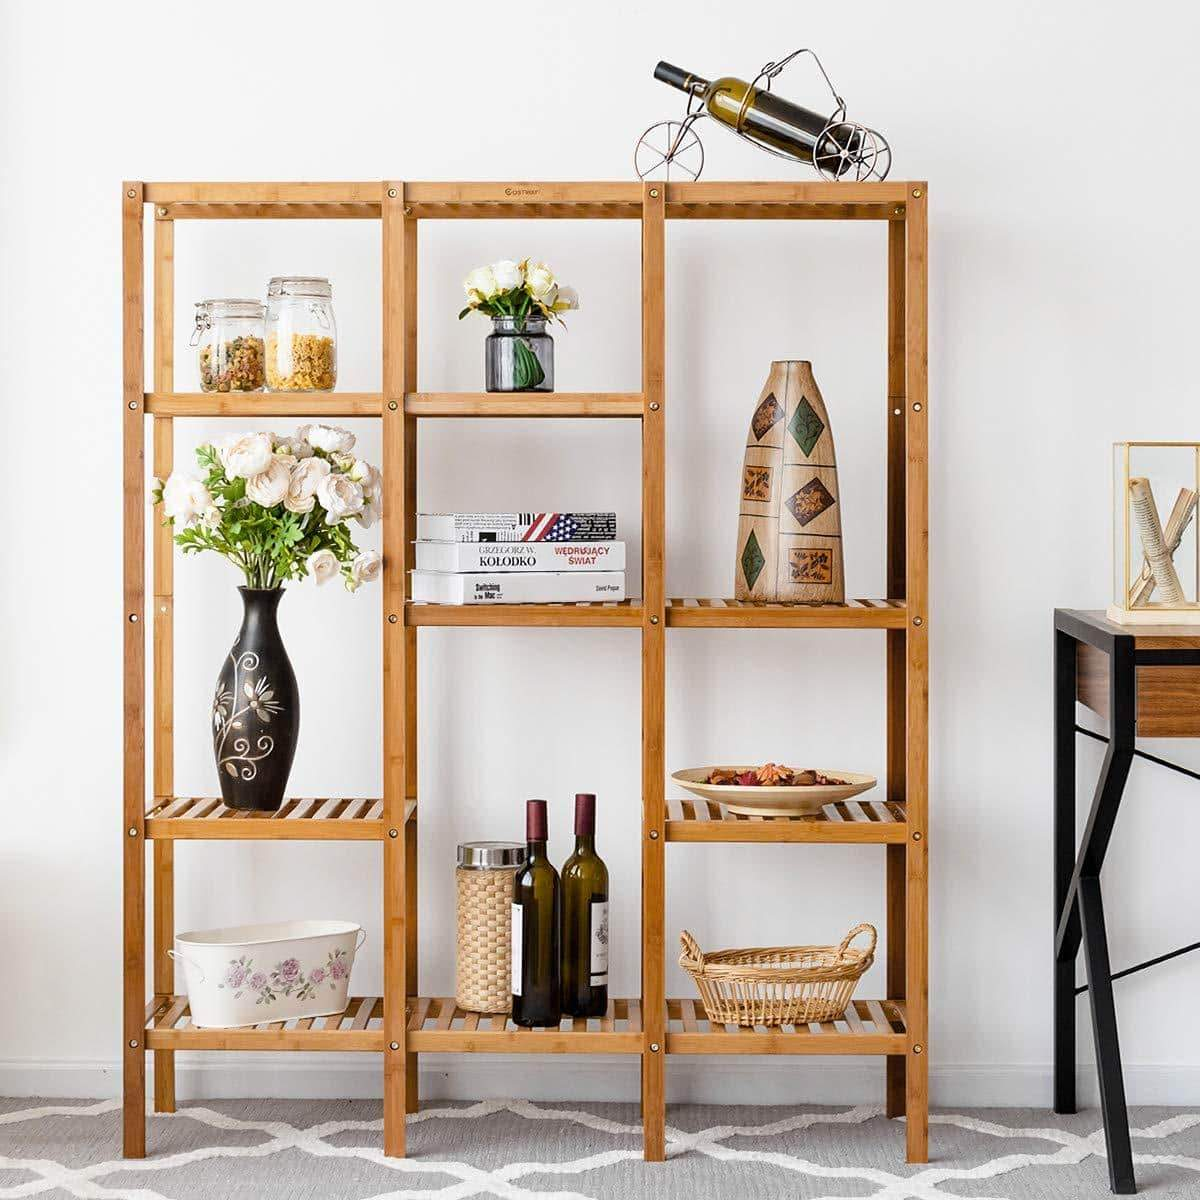 Best seller  costway multifunctional bamboo shelf bathroom rack storage organizer rack plant display stand w several cell closet storage cabinet 5 tier